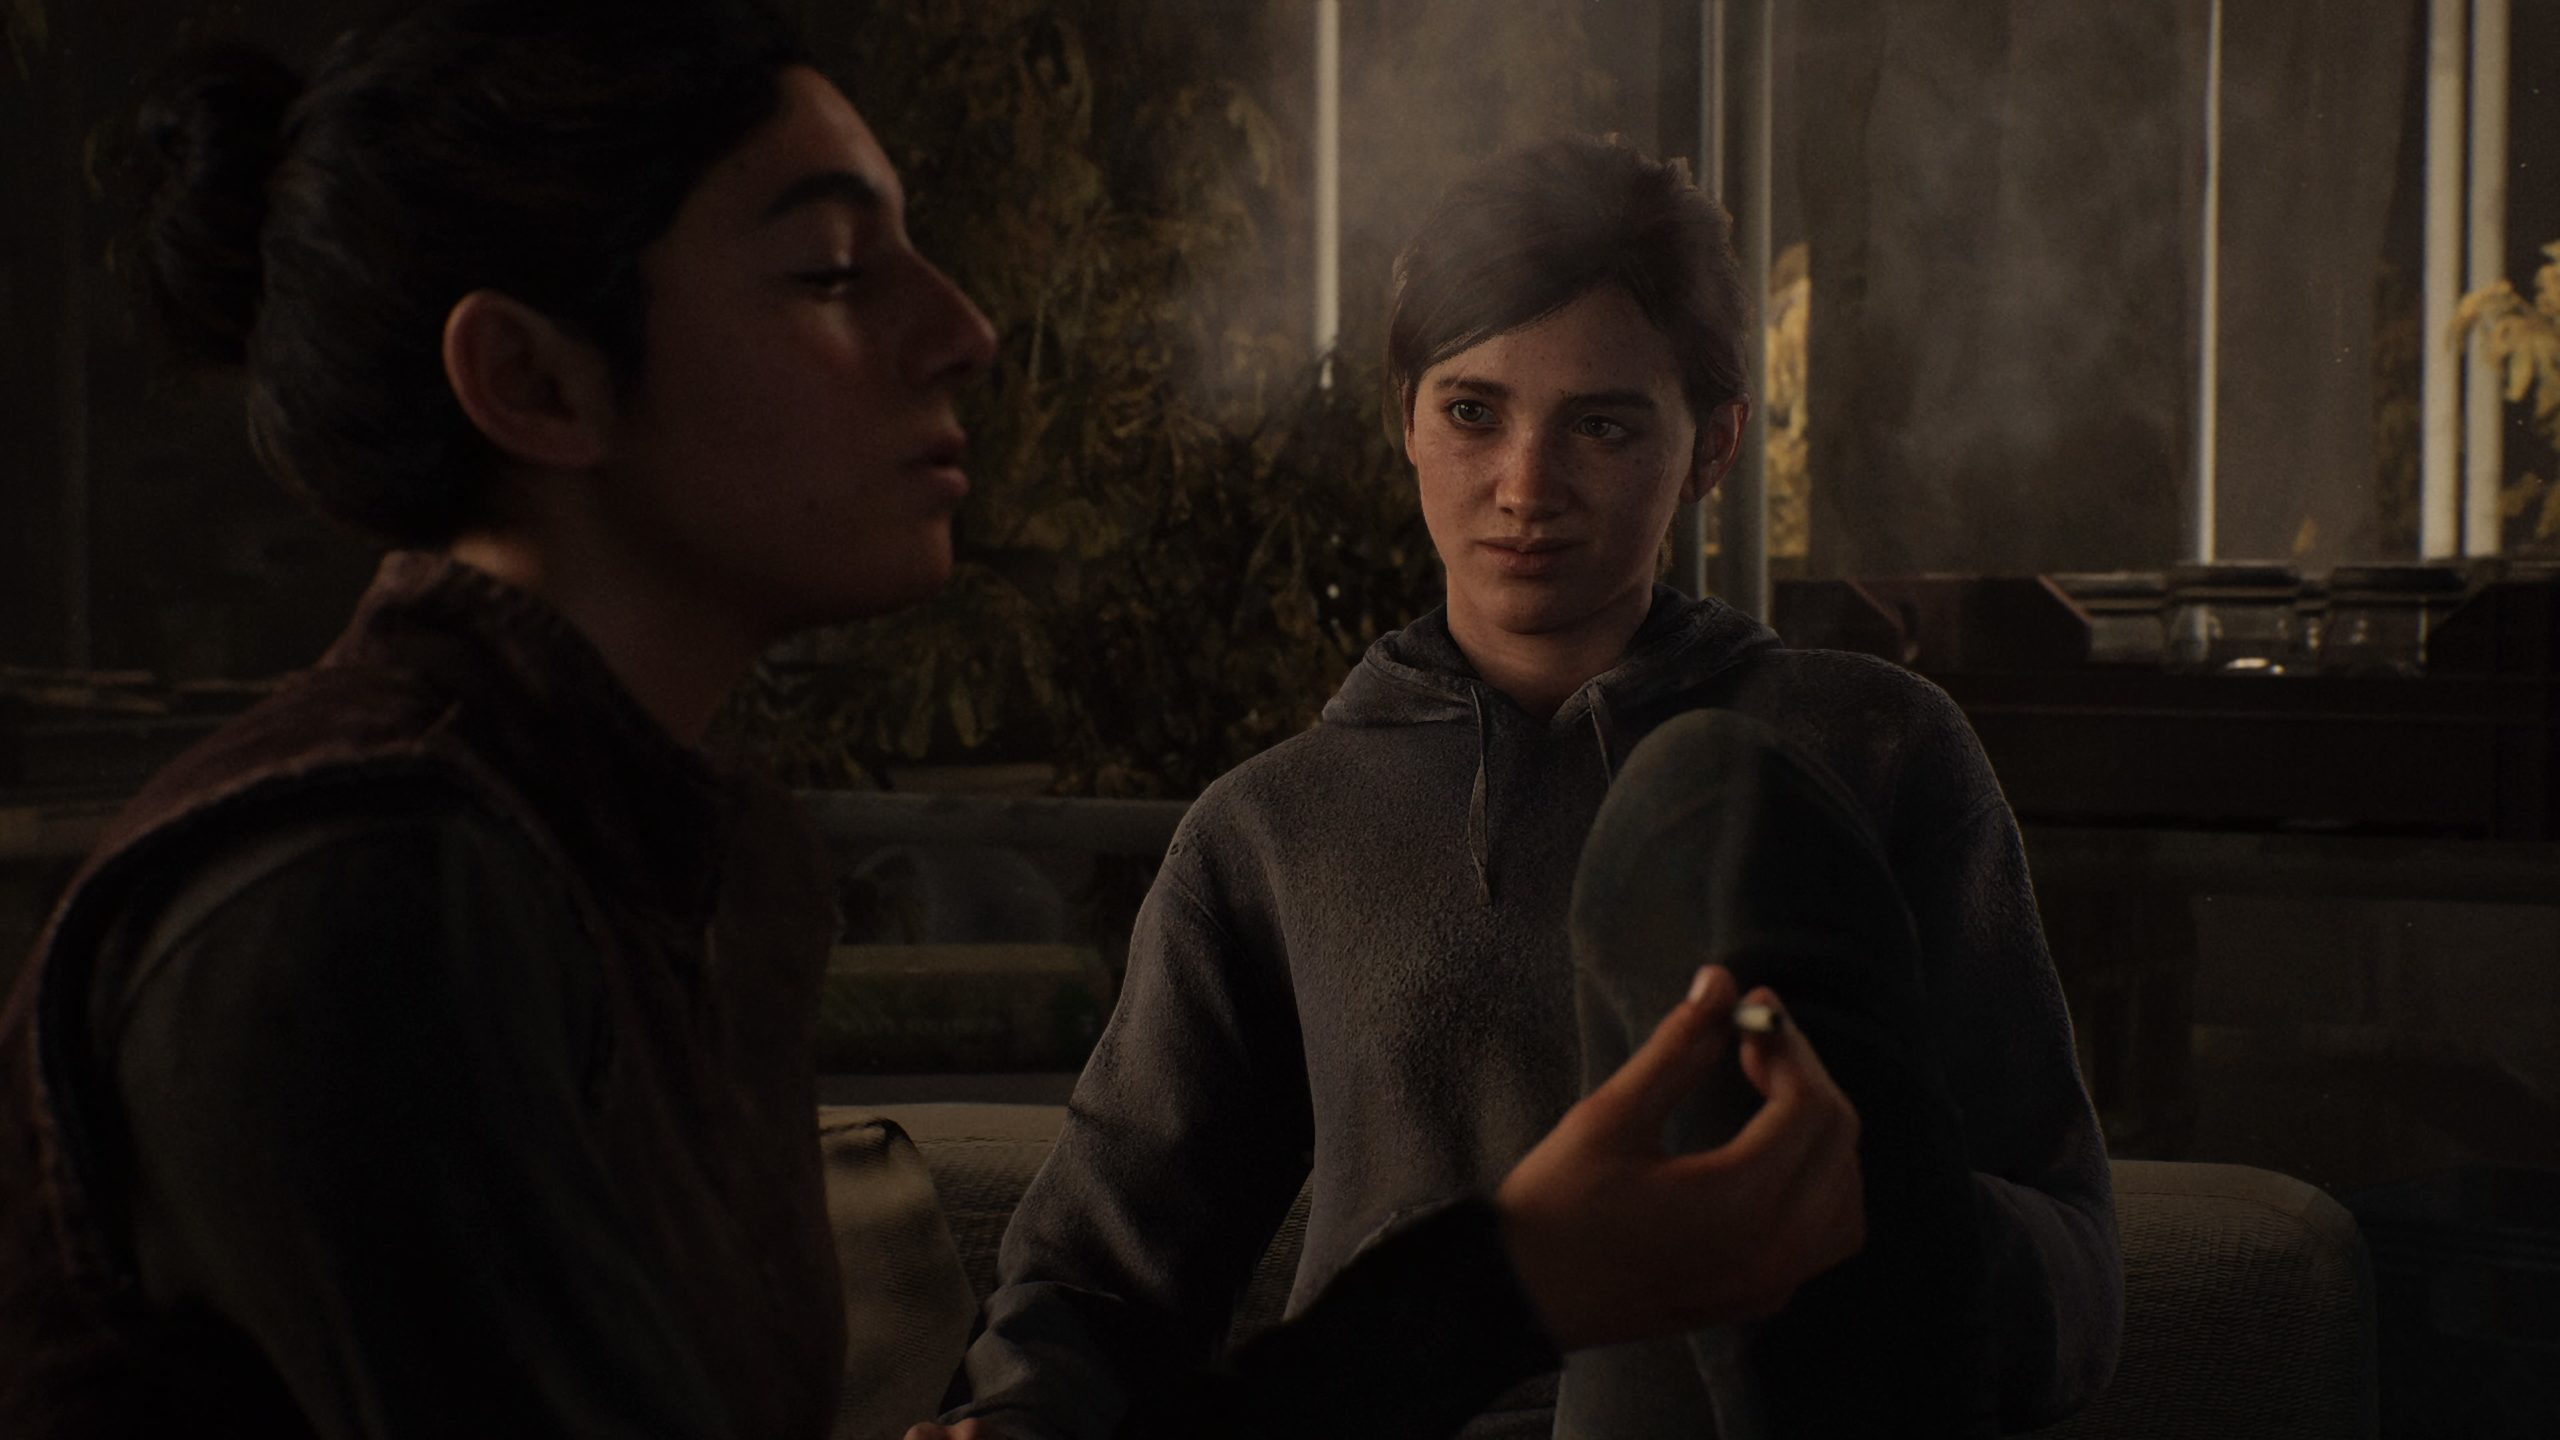 Ellie und Dina rauchen einen Joint in The Last of Us Part 2